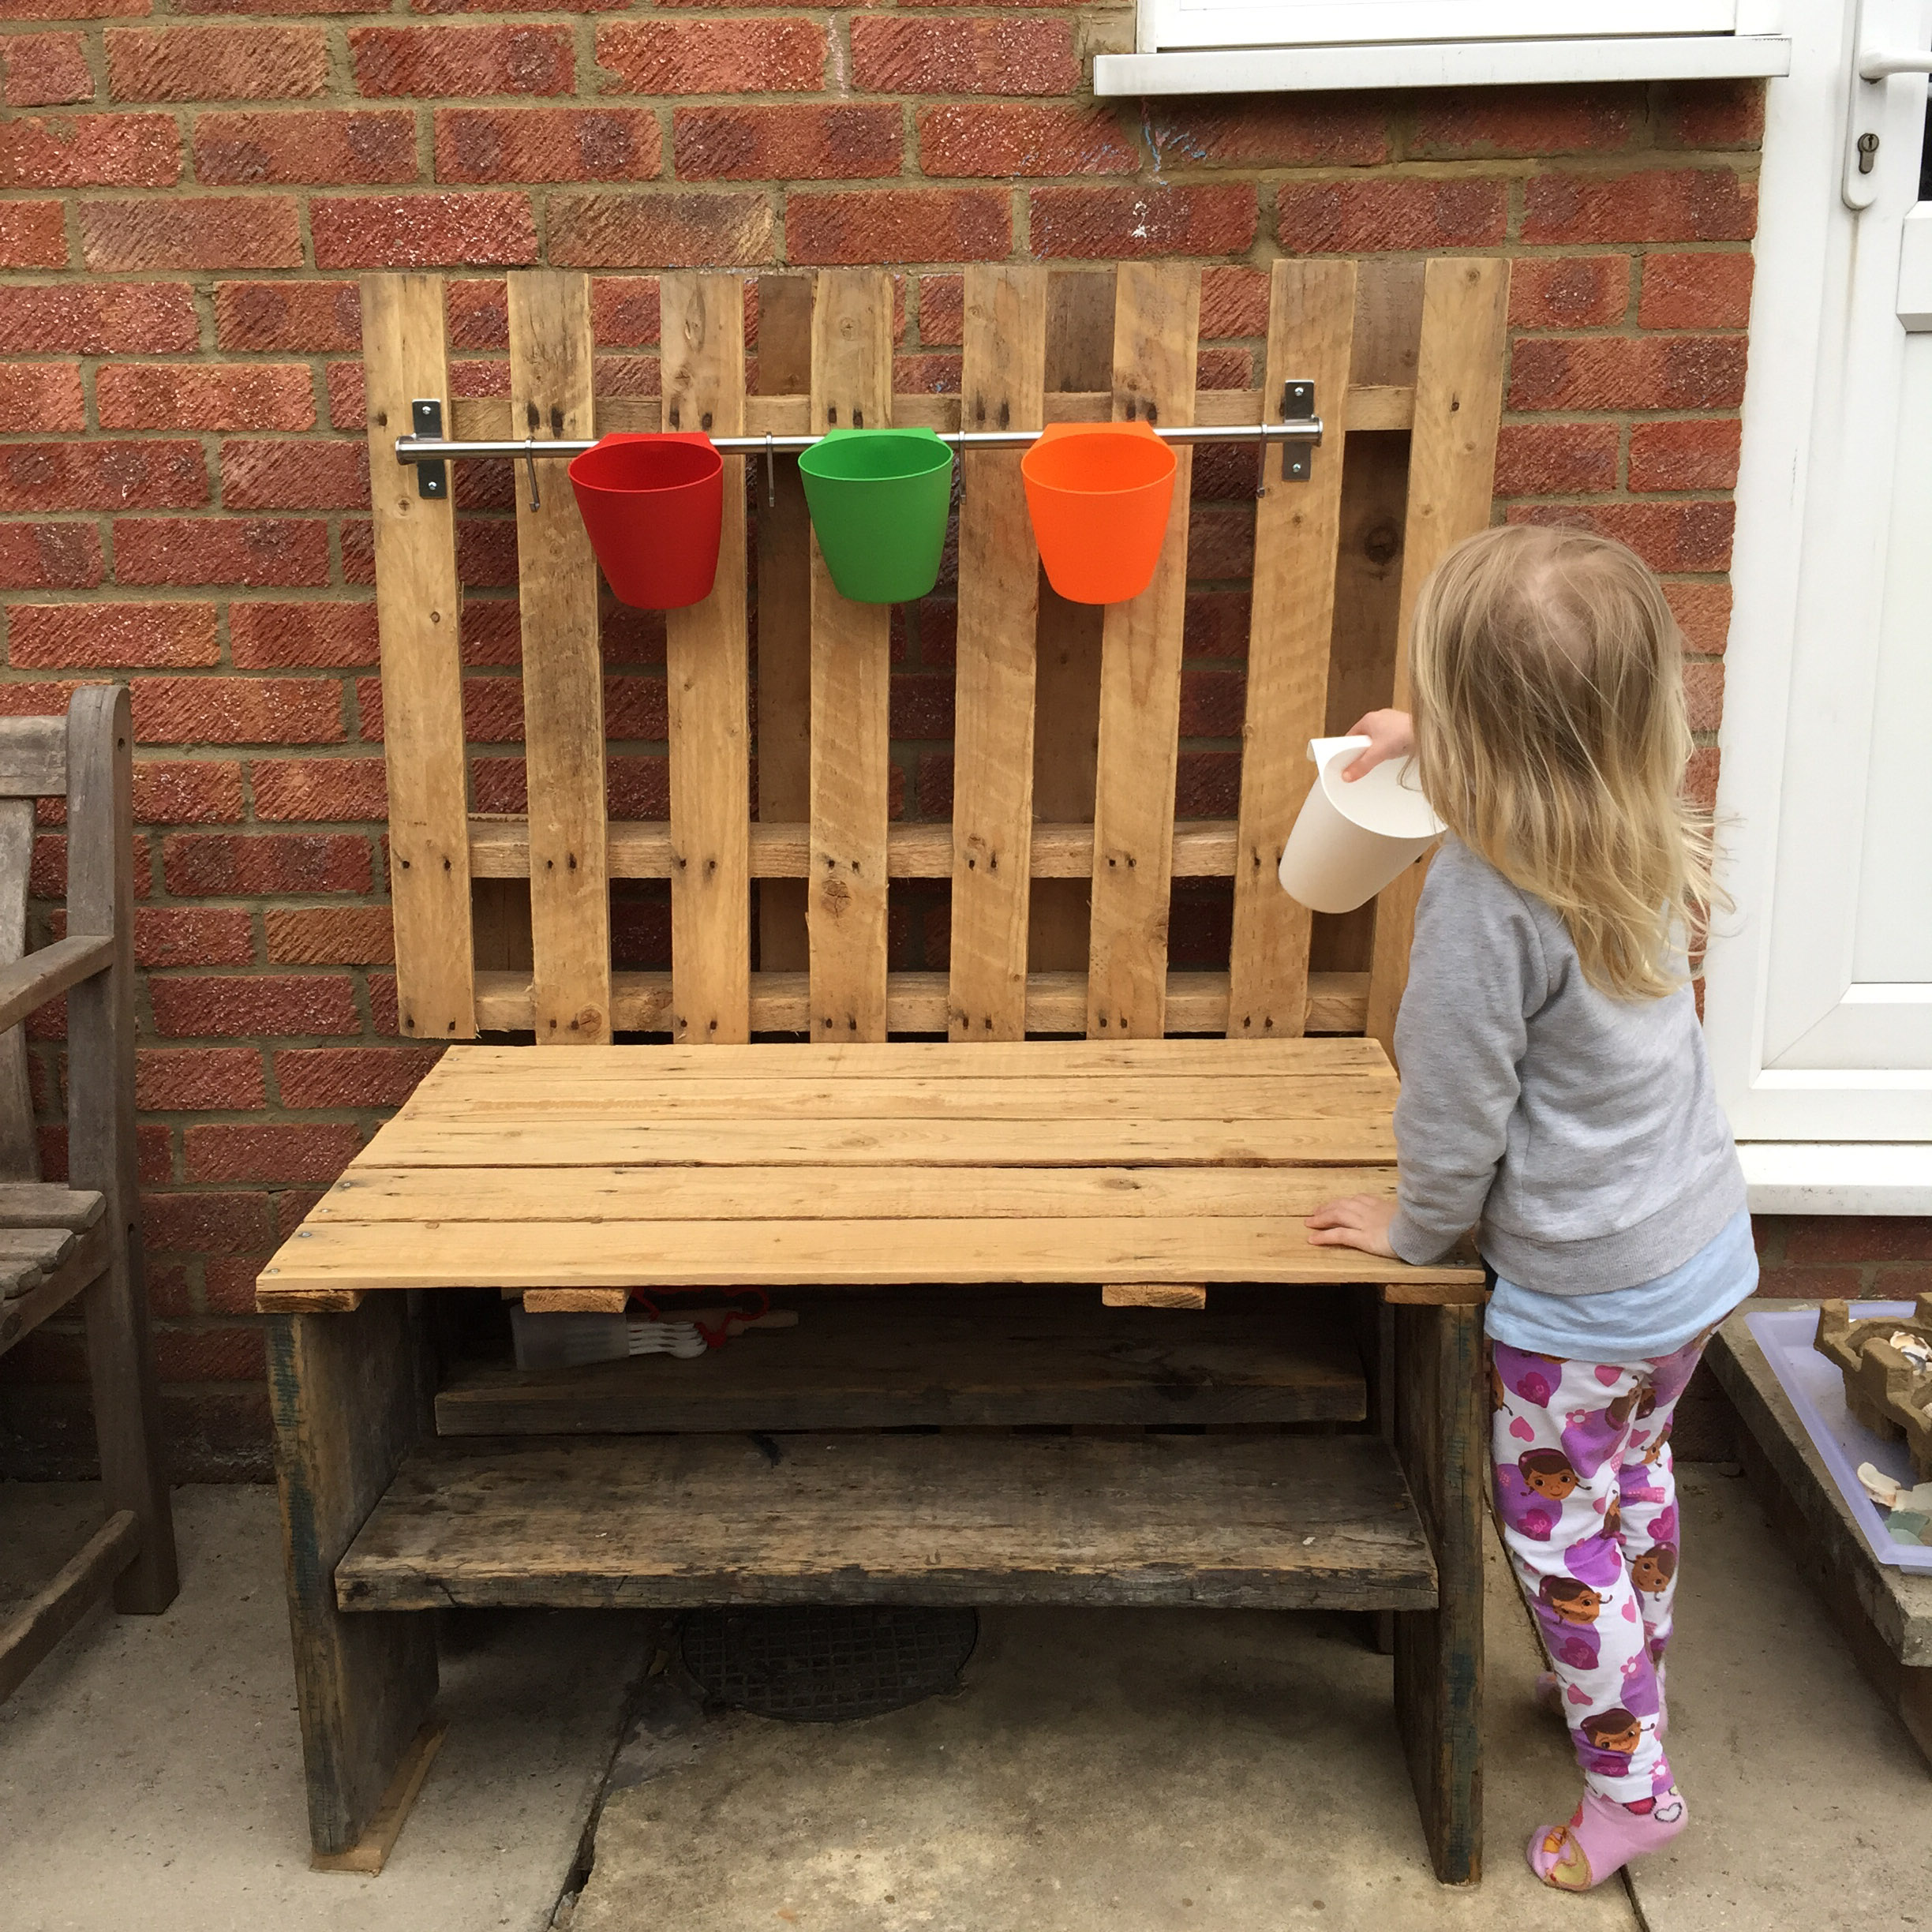 How To Build A Mud Kitchen The Gingerbread House Co Uk